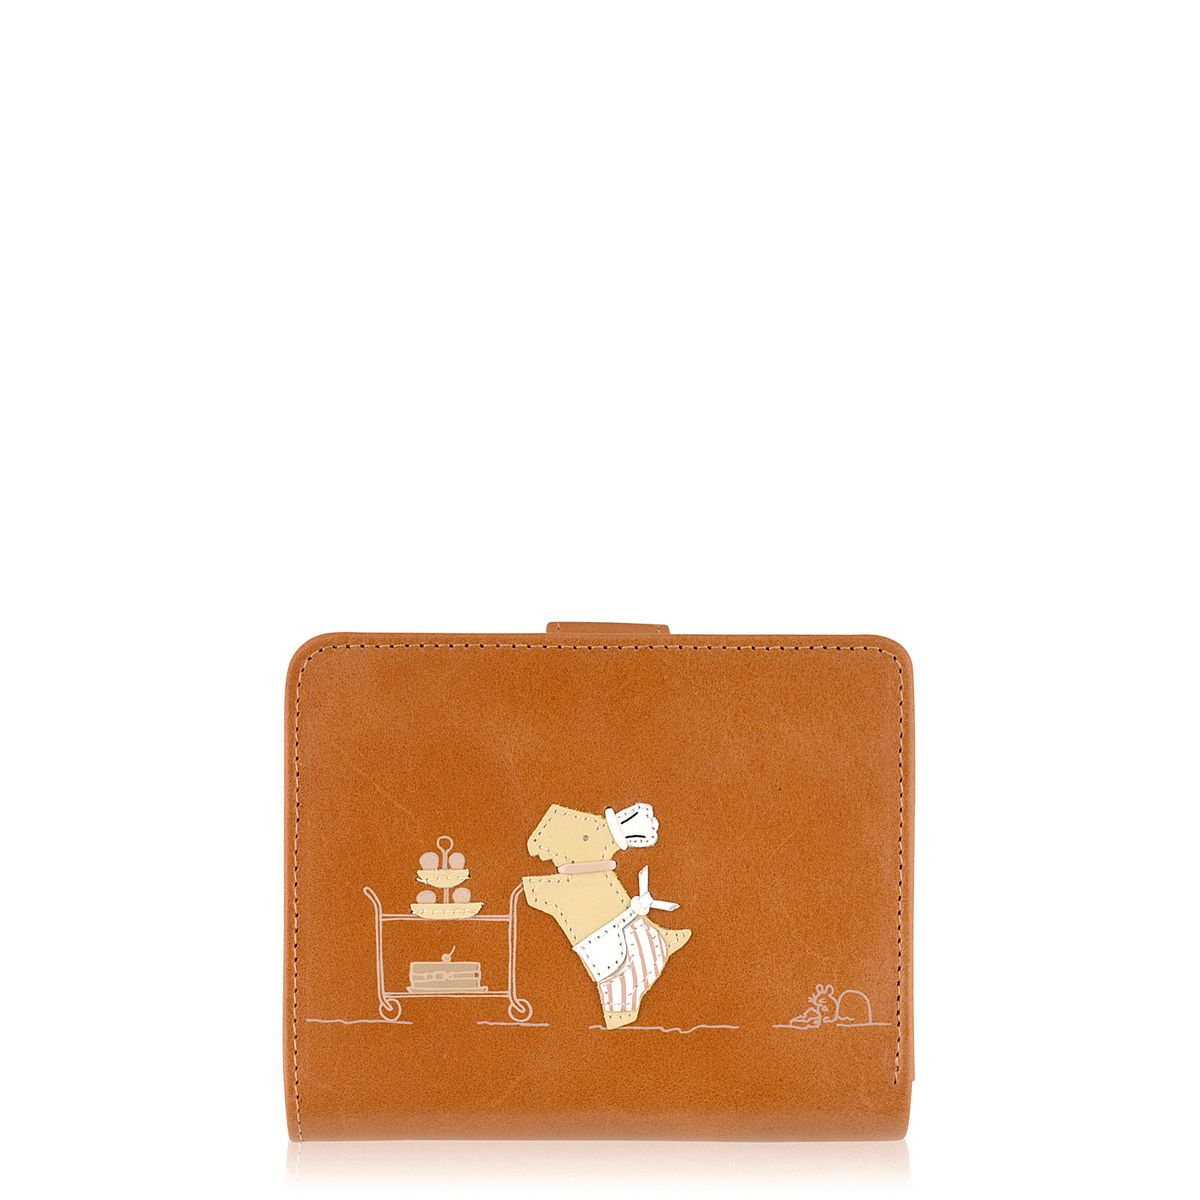 Patisserie Raderlie medium tan flapover purse